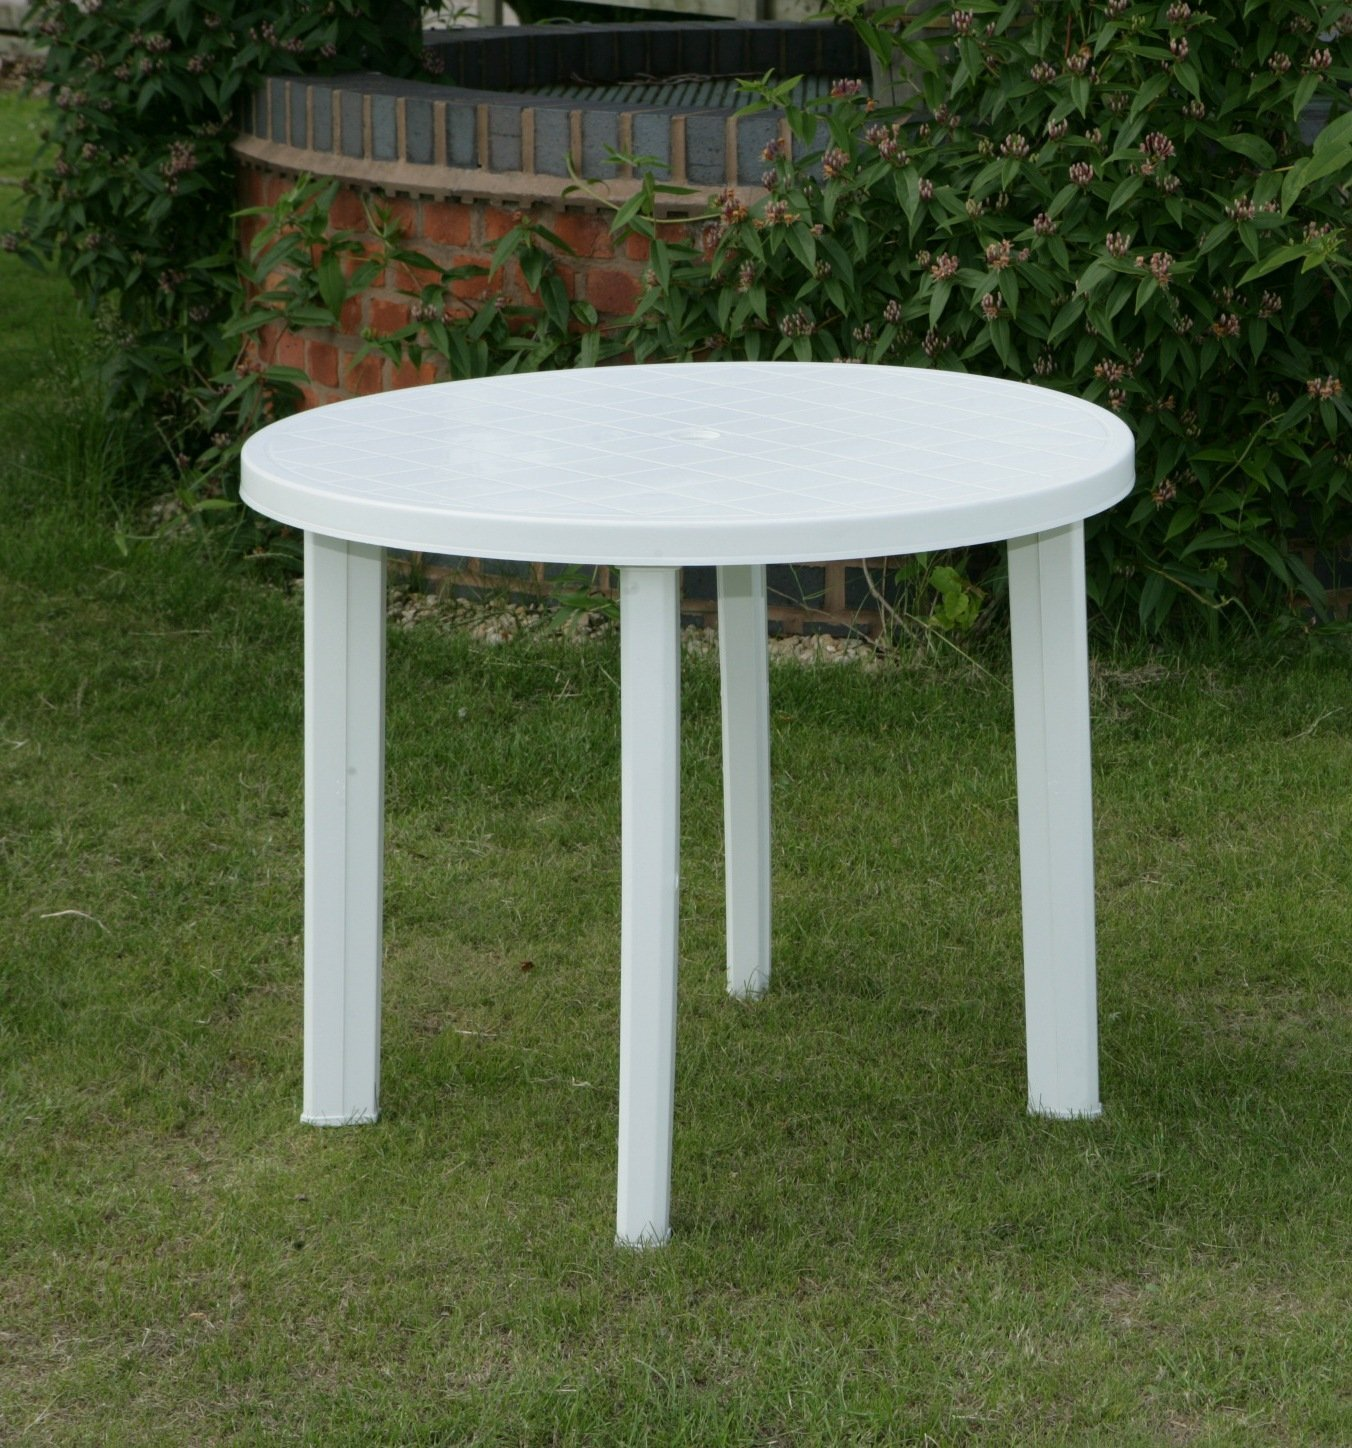 round garden table only in white resin patio furniture outdoor dining bistro amazoncouk garden outdoors